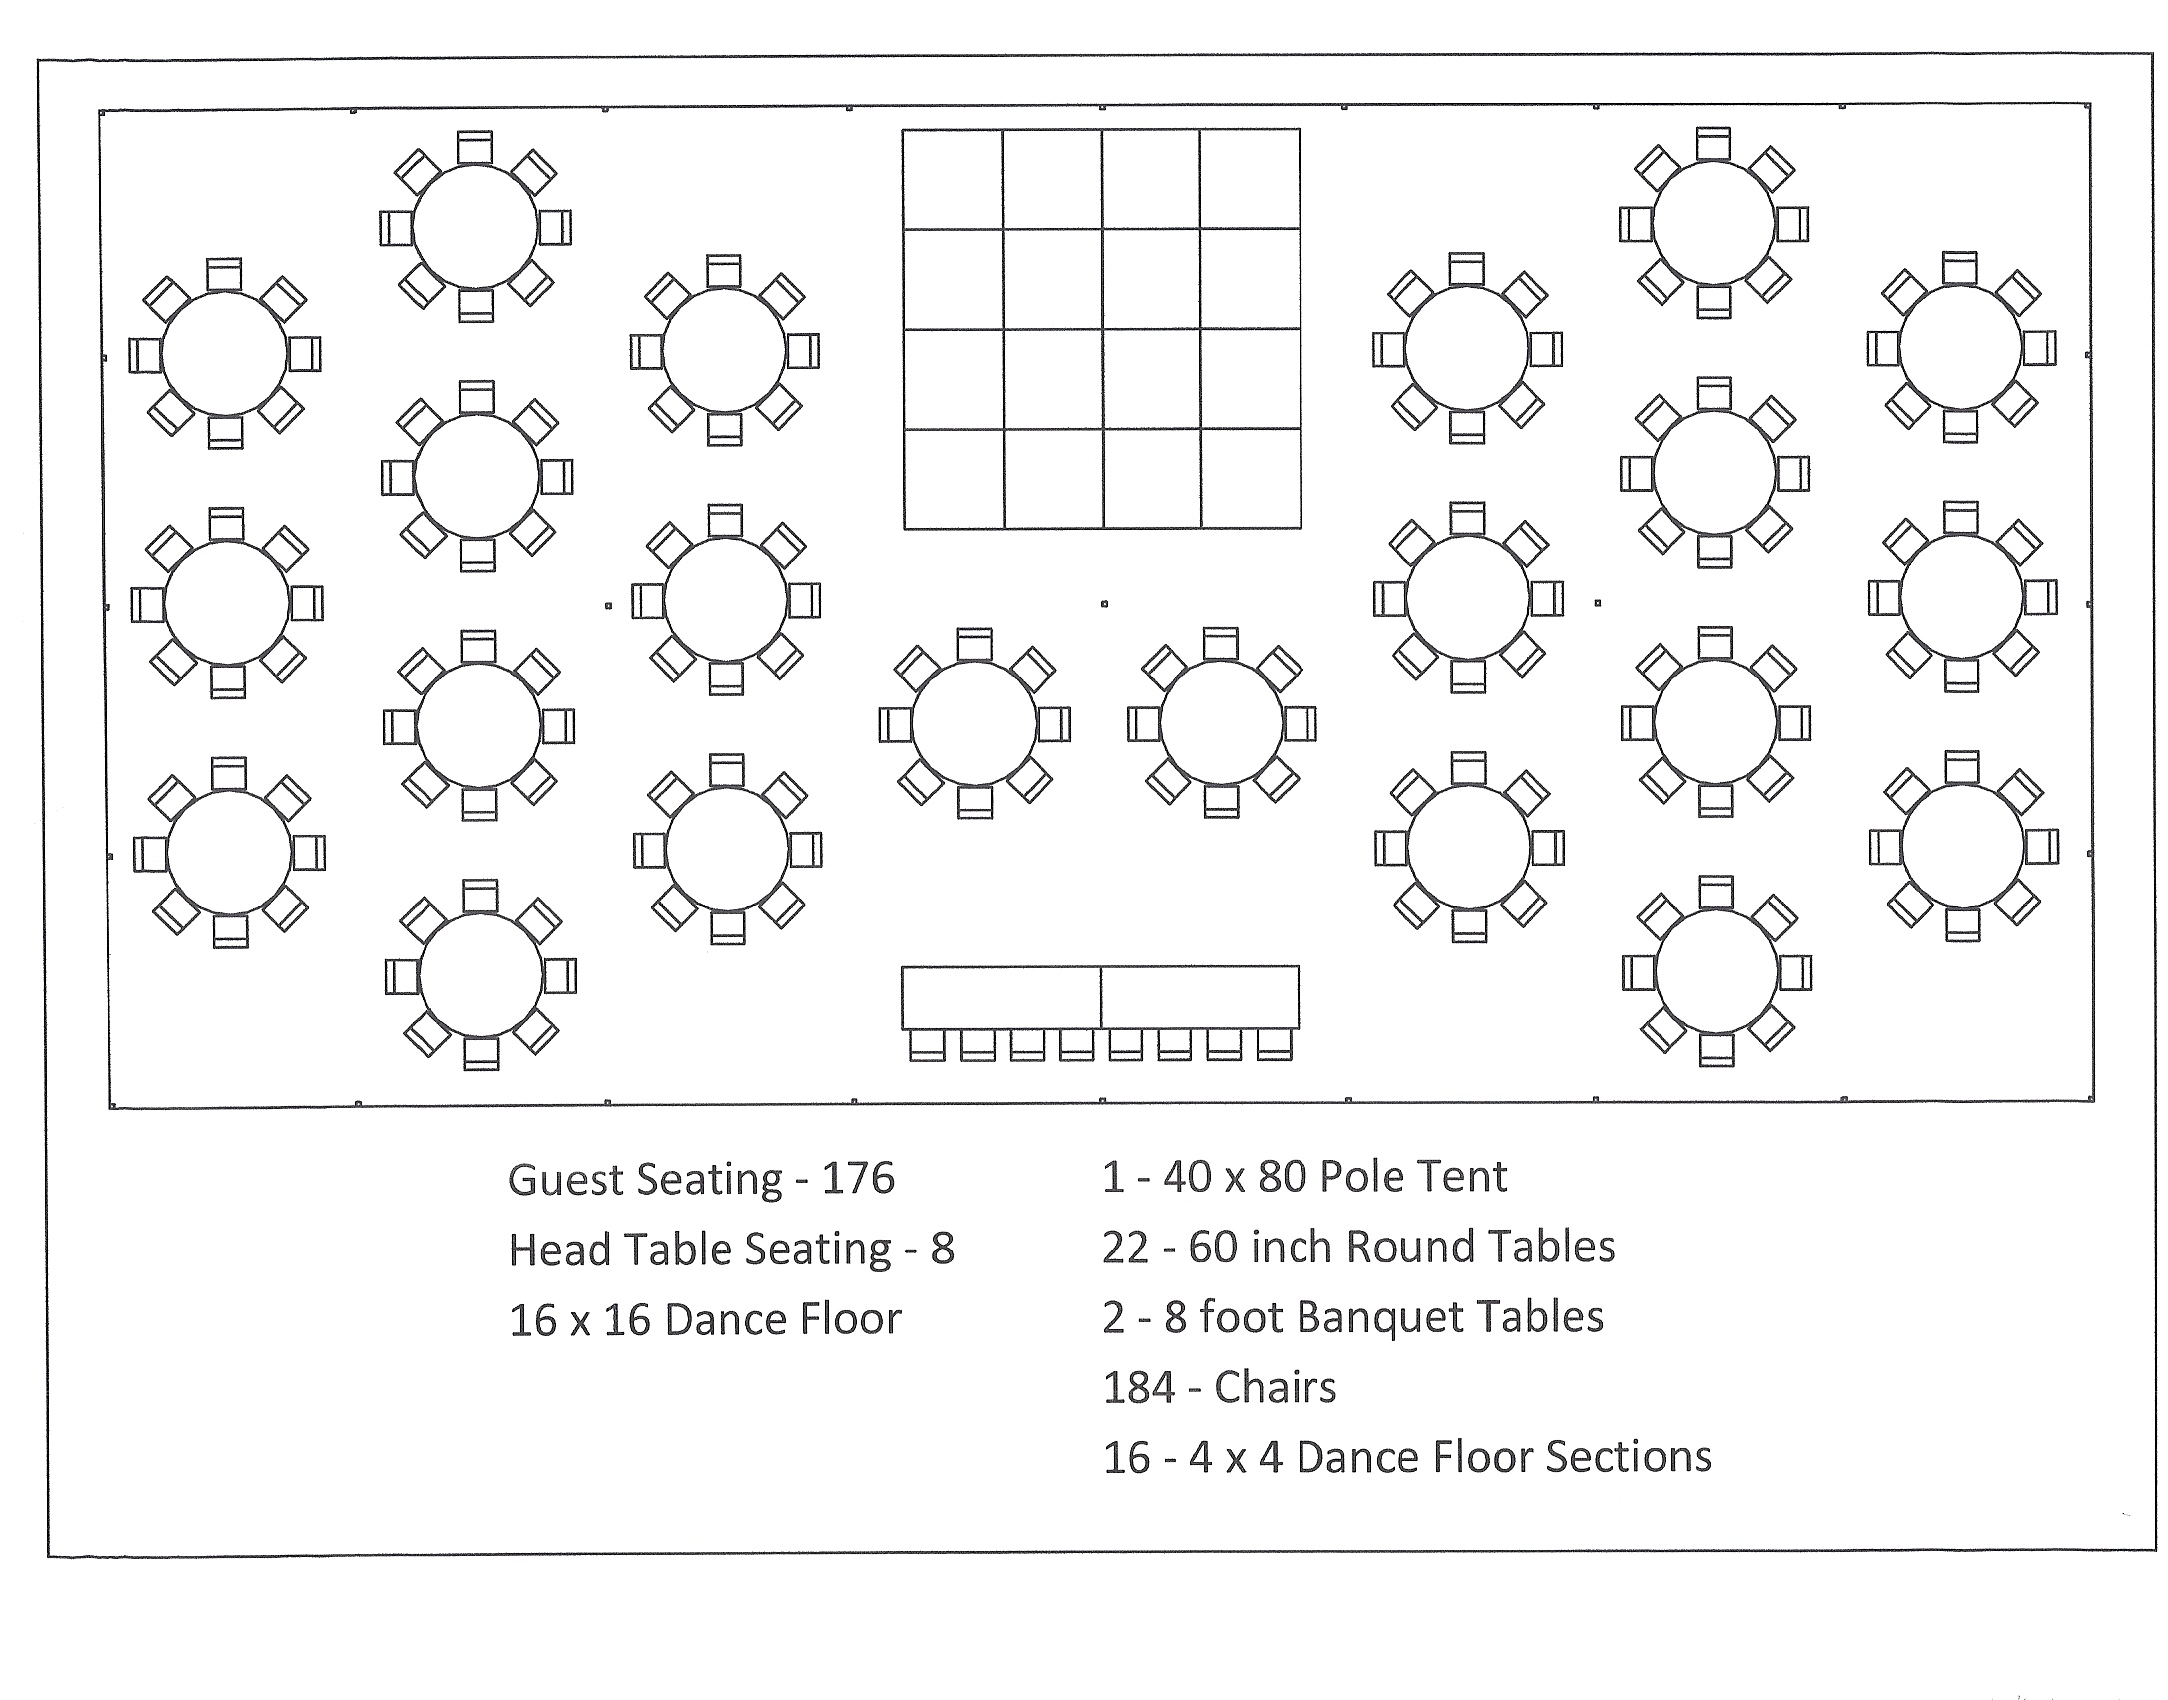 sc 1 st  Canton Canopies & 40 x 80 Pole Tent Seating Arrangements